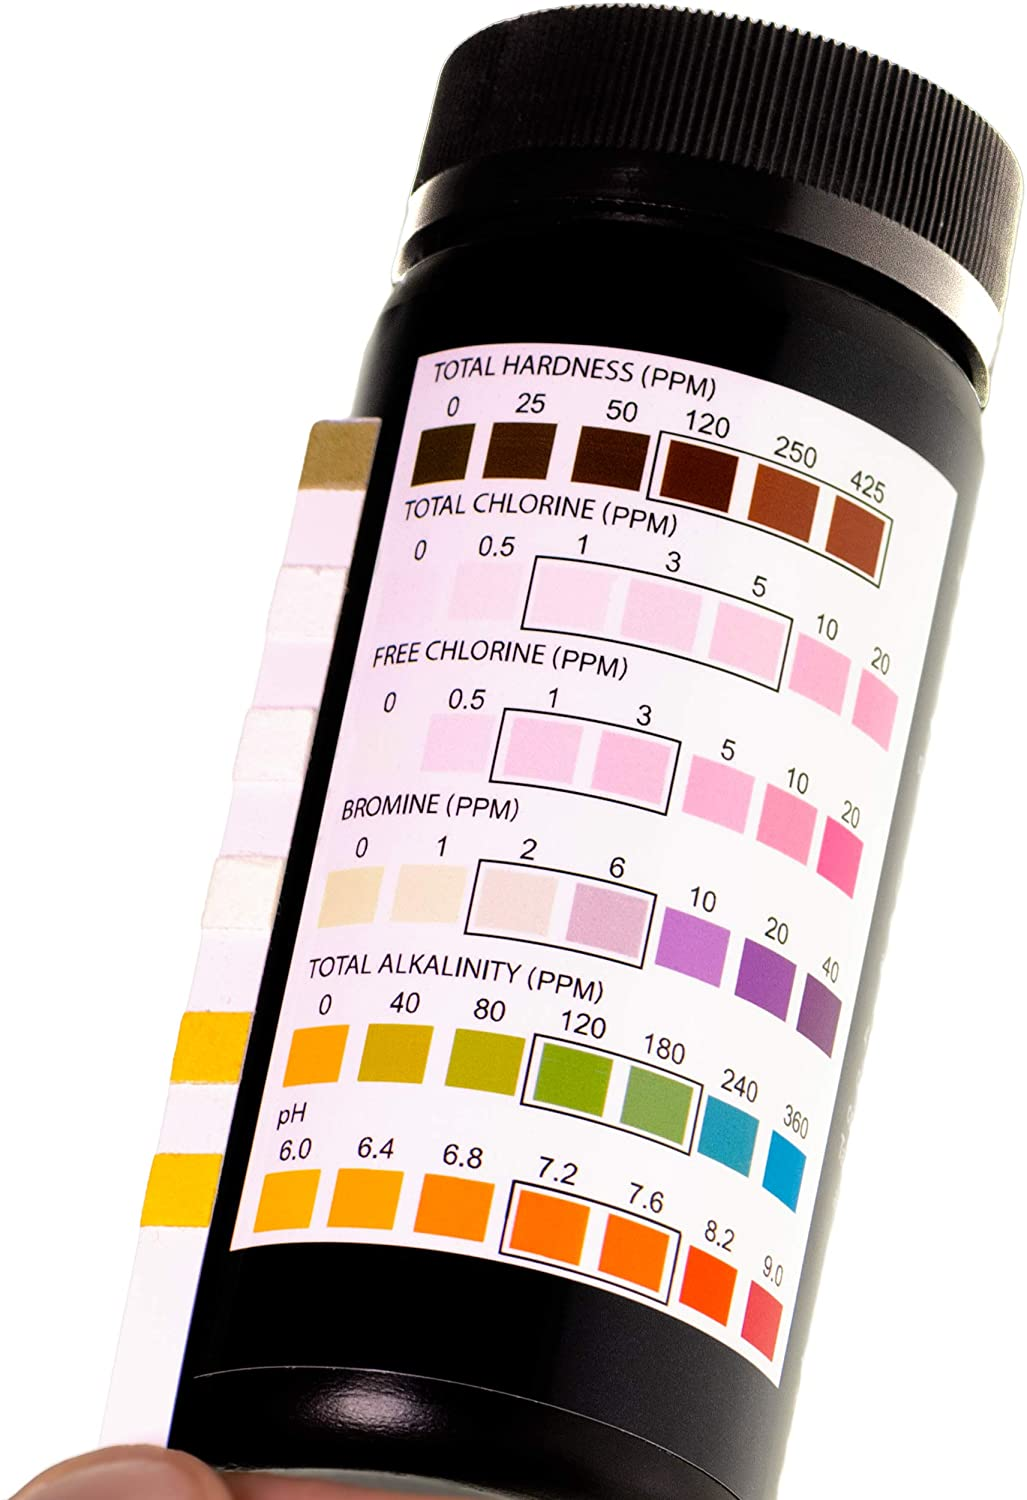 a pool chemical test strip next black bottle checking the hardness, chlorine, free chlorine, bromine, alkalinity and pH levels